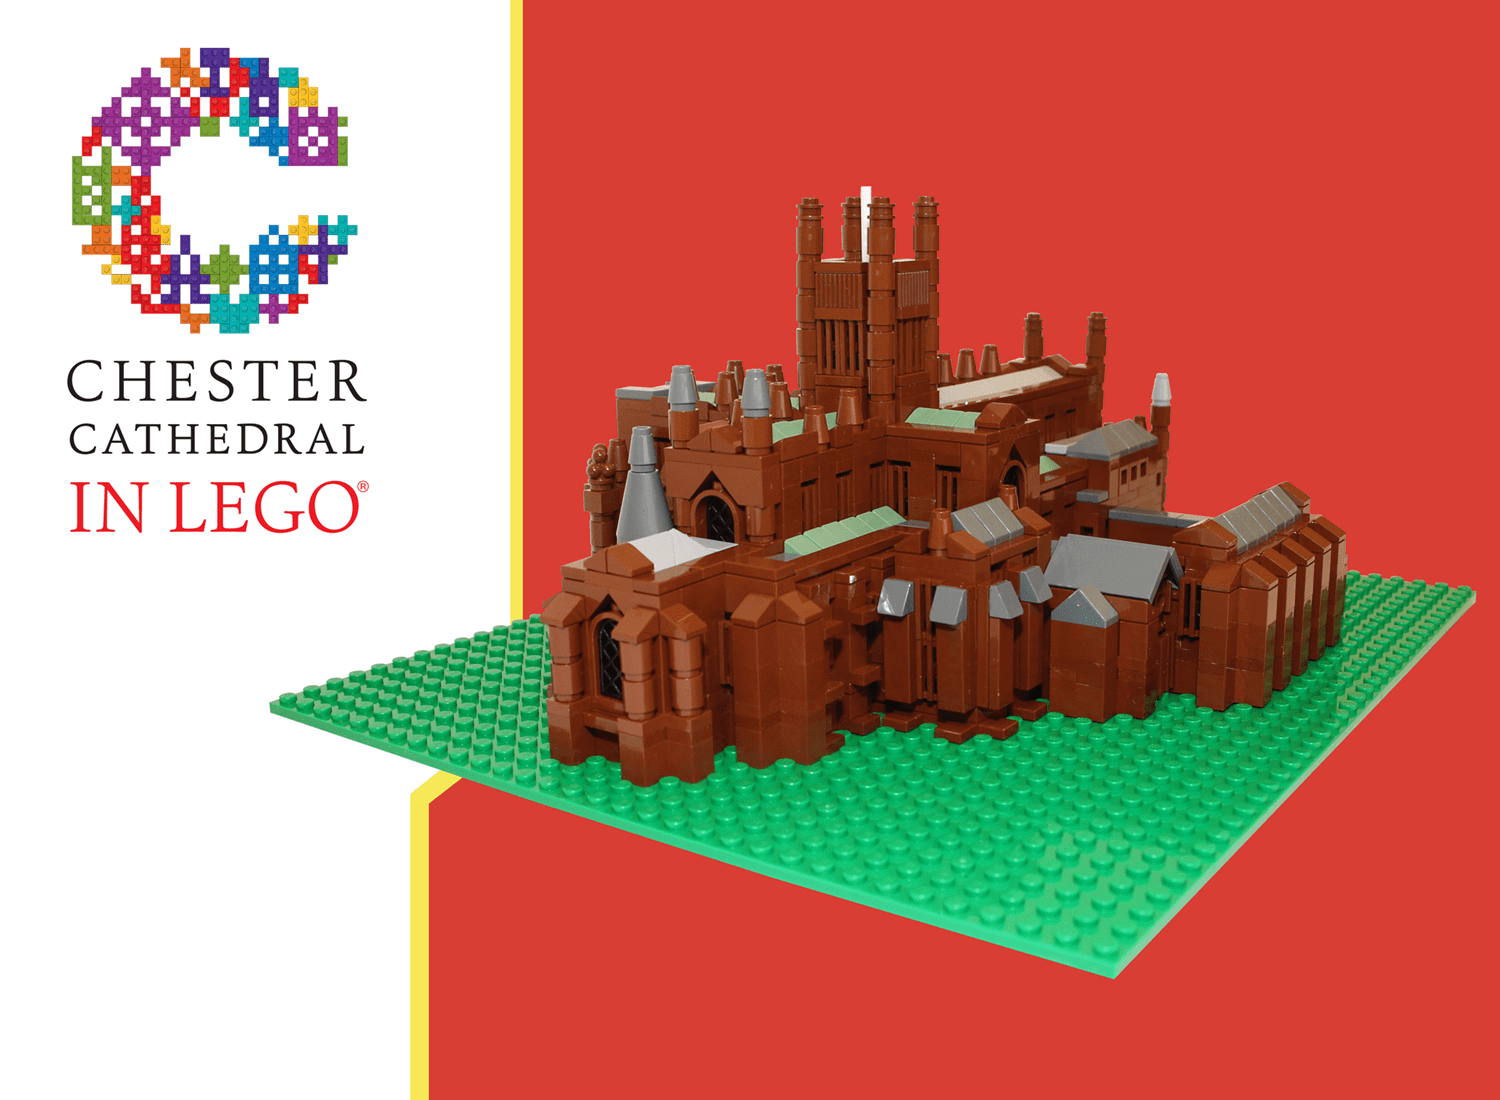 chester_cathedral_box_lego